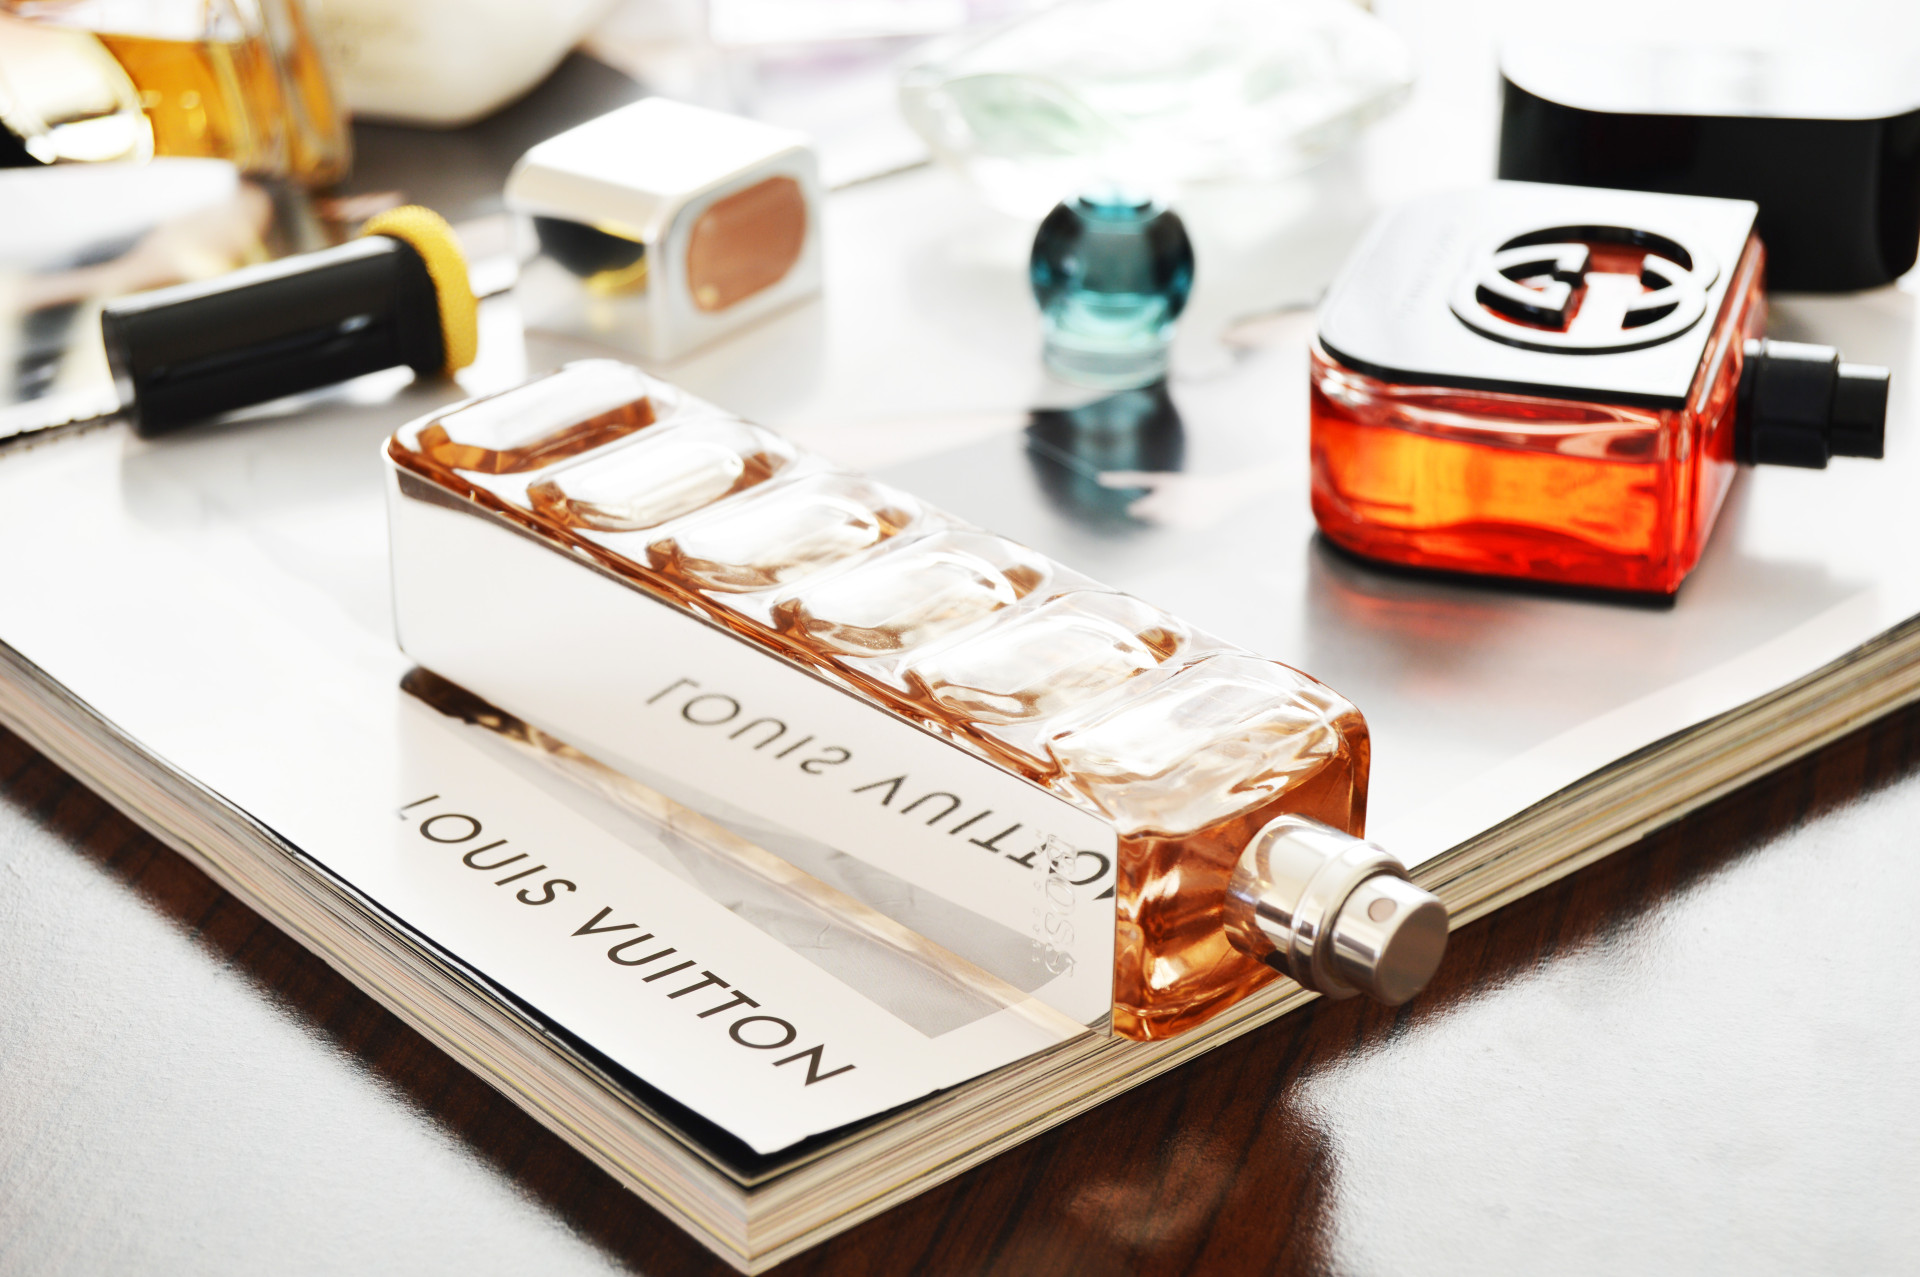 Best Perfumes   You should pick your perfume according to the season, having heavy spicy perfume might not be the best for hot summer days. Check out the best perfumes for seasons.